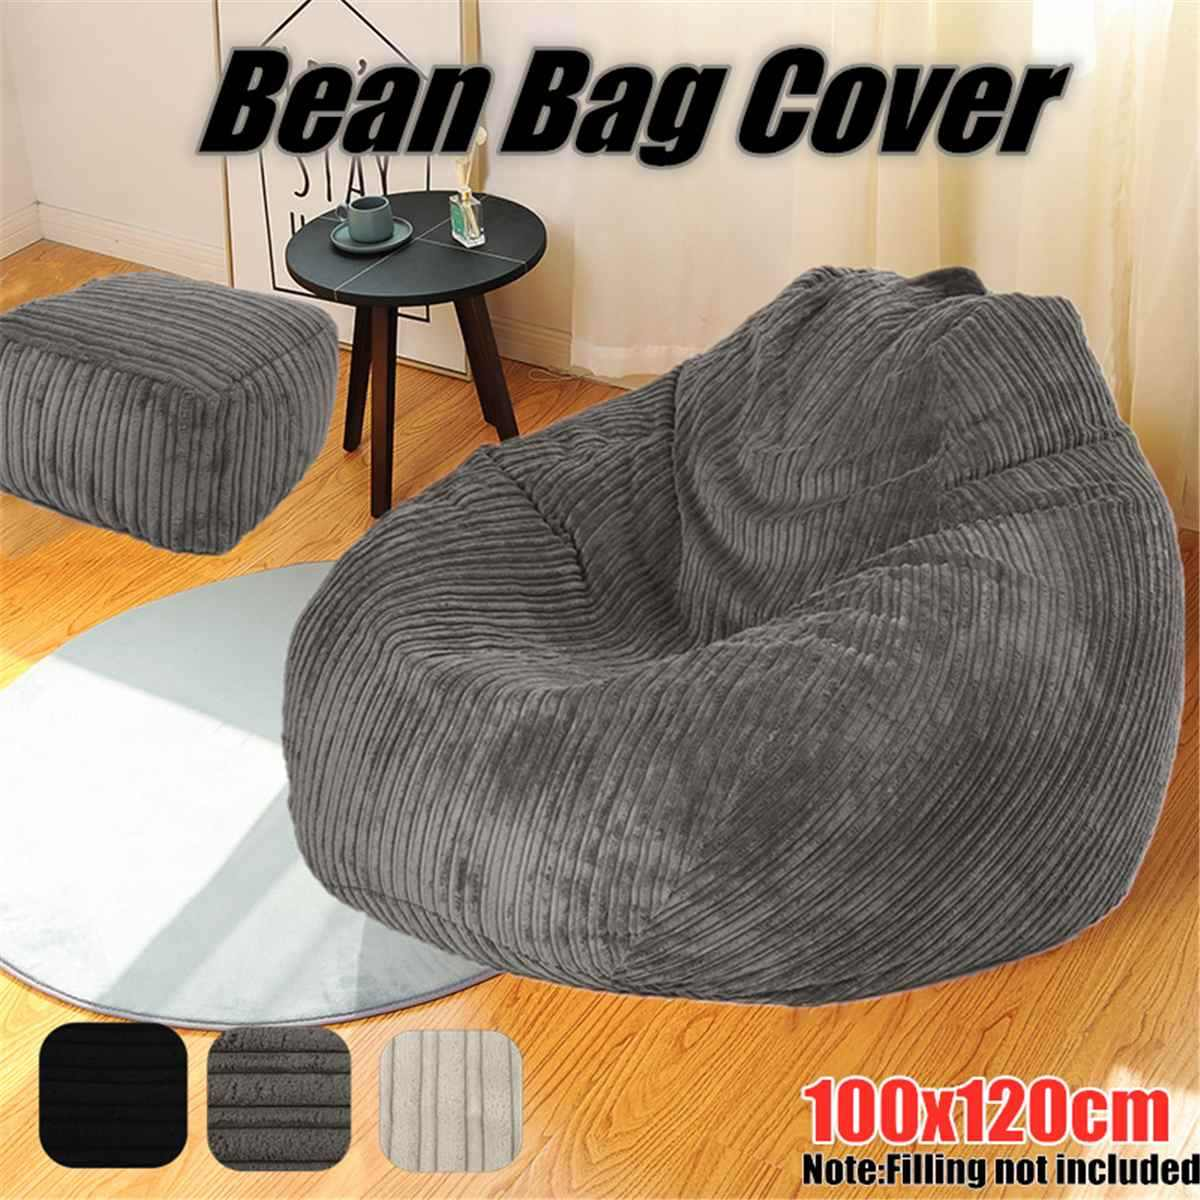 Large Lazy Beanbag Sofas Cover Chairs Without Filler Corduroy Lounger Seat Bean Bag Pouf Puff Couch Tatami Living Room Grey Bean Bag Sofas Aliexpress